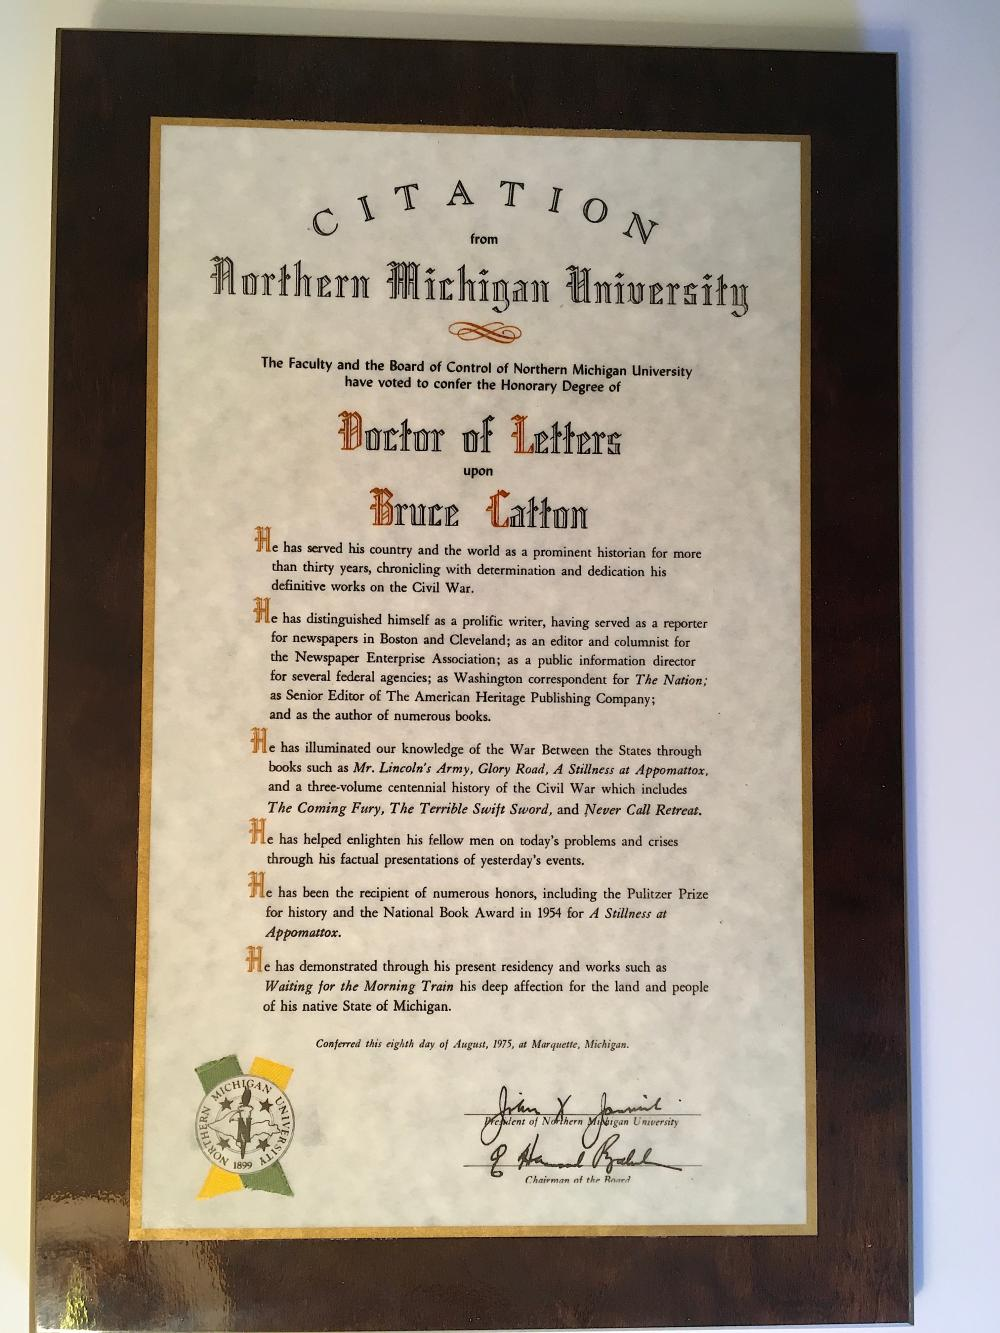 Bruce Catton Northern Michigan University 1975 Honorary Doctor of Letters Degree